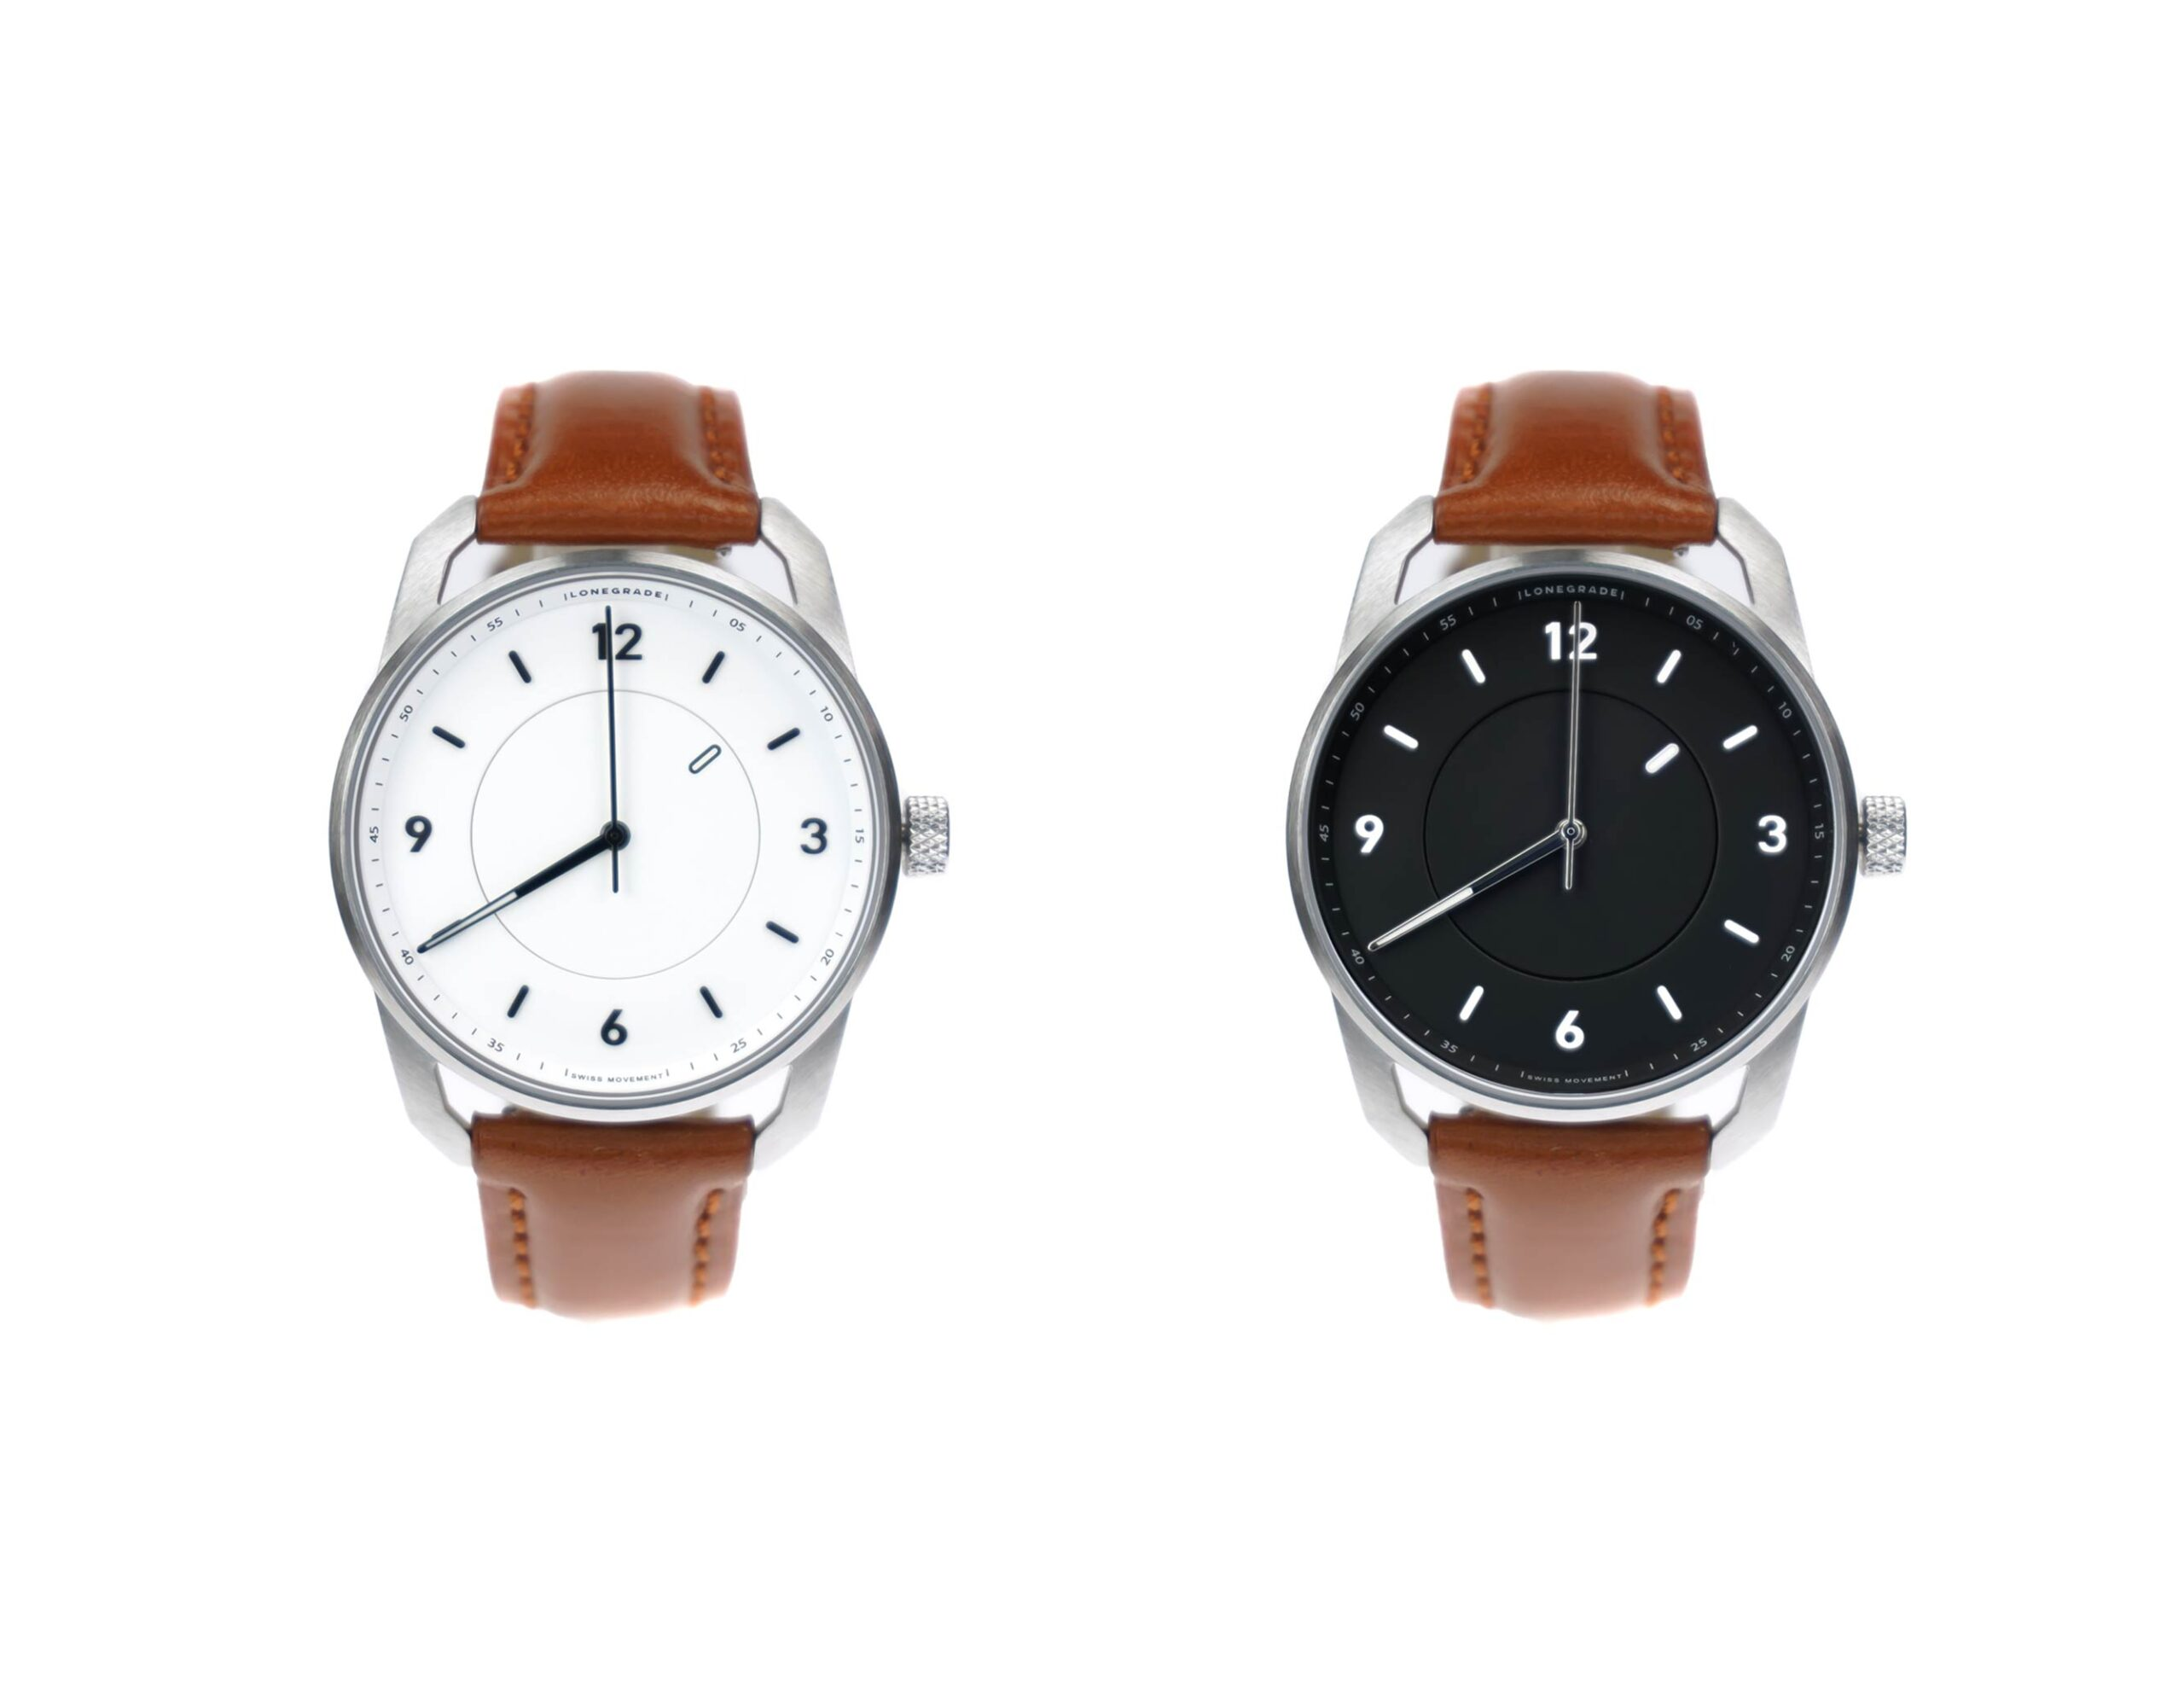 Lonegrade HDR140 Watch